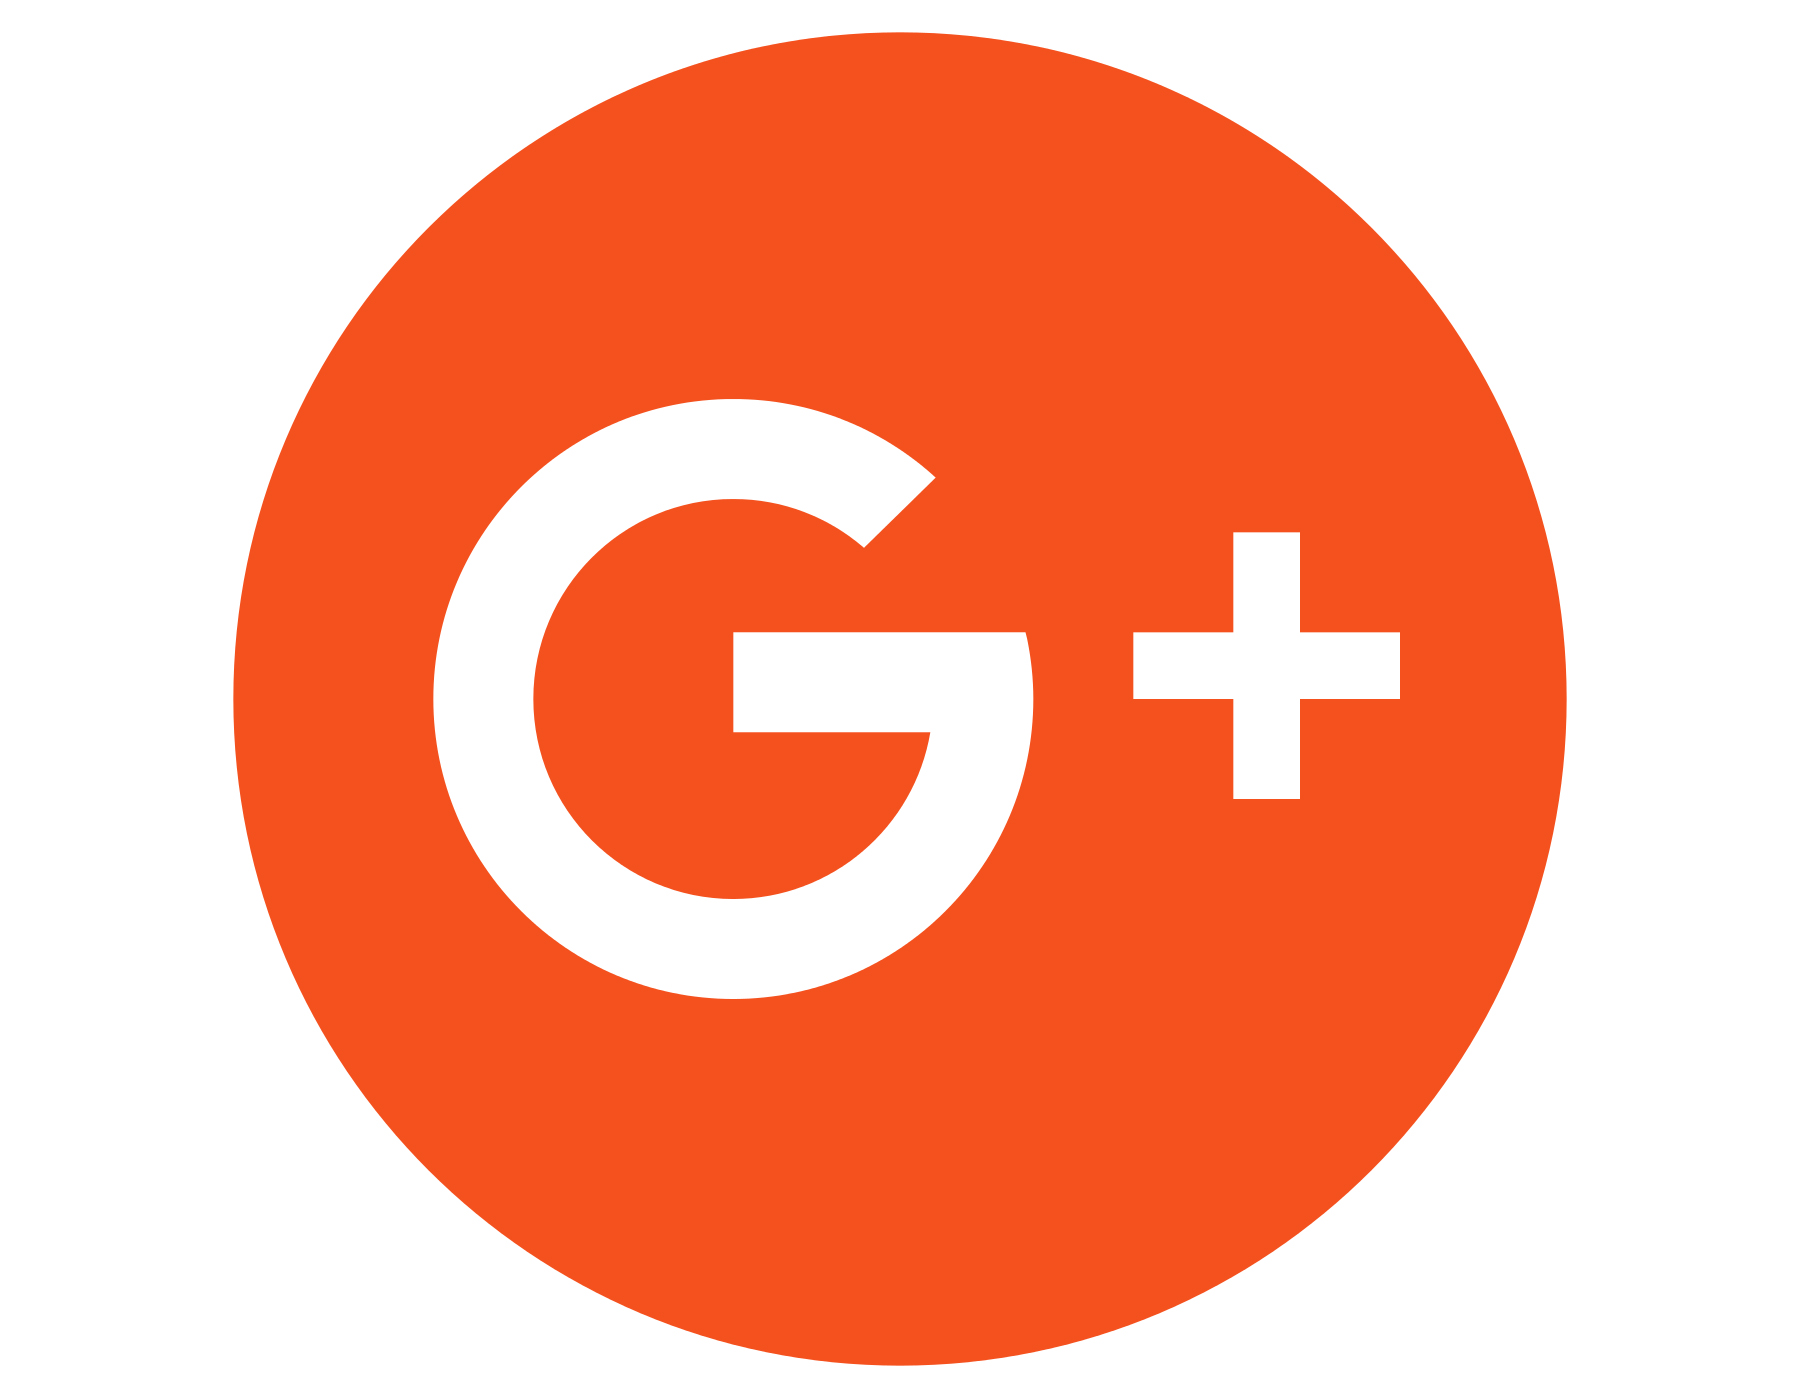 Google plus logo, social media